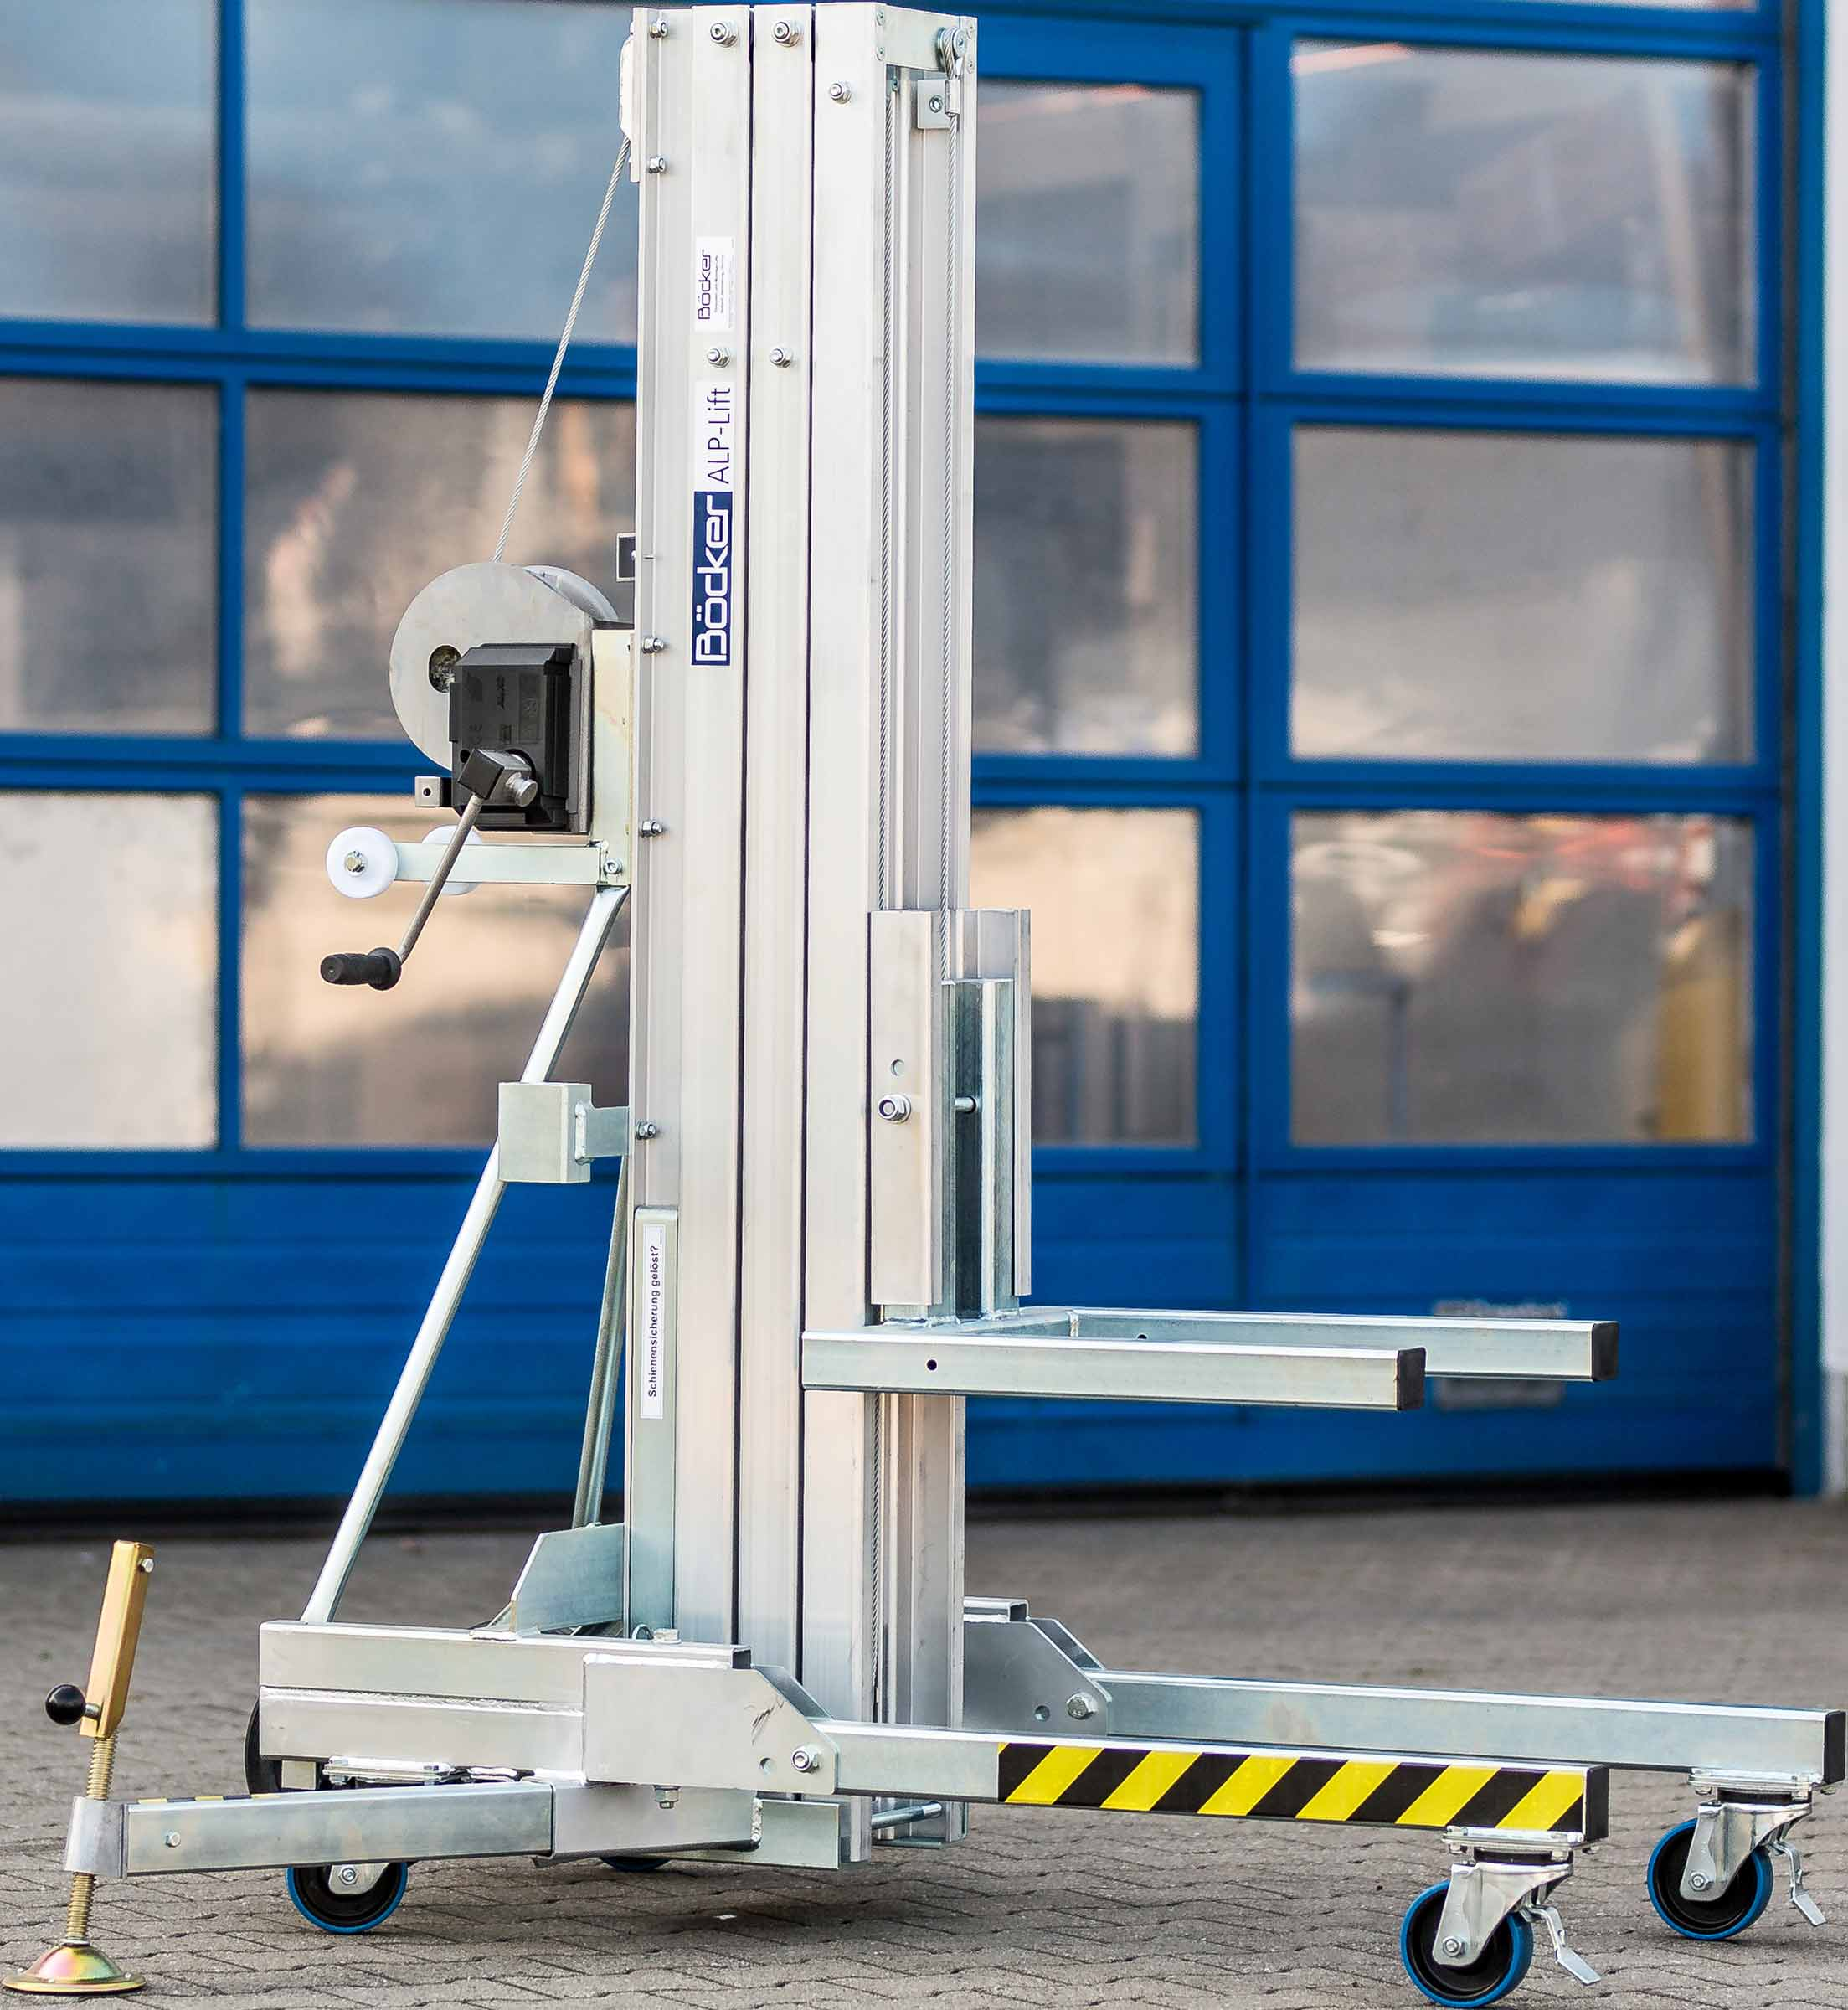 Lastenlift Böcker ALP-Lift LMX 500